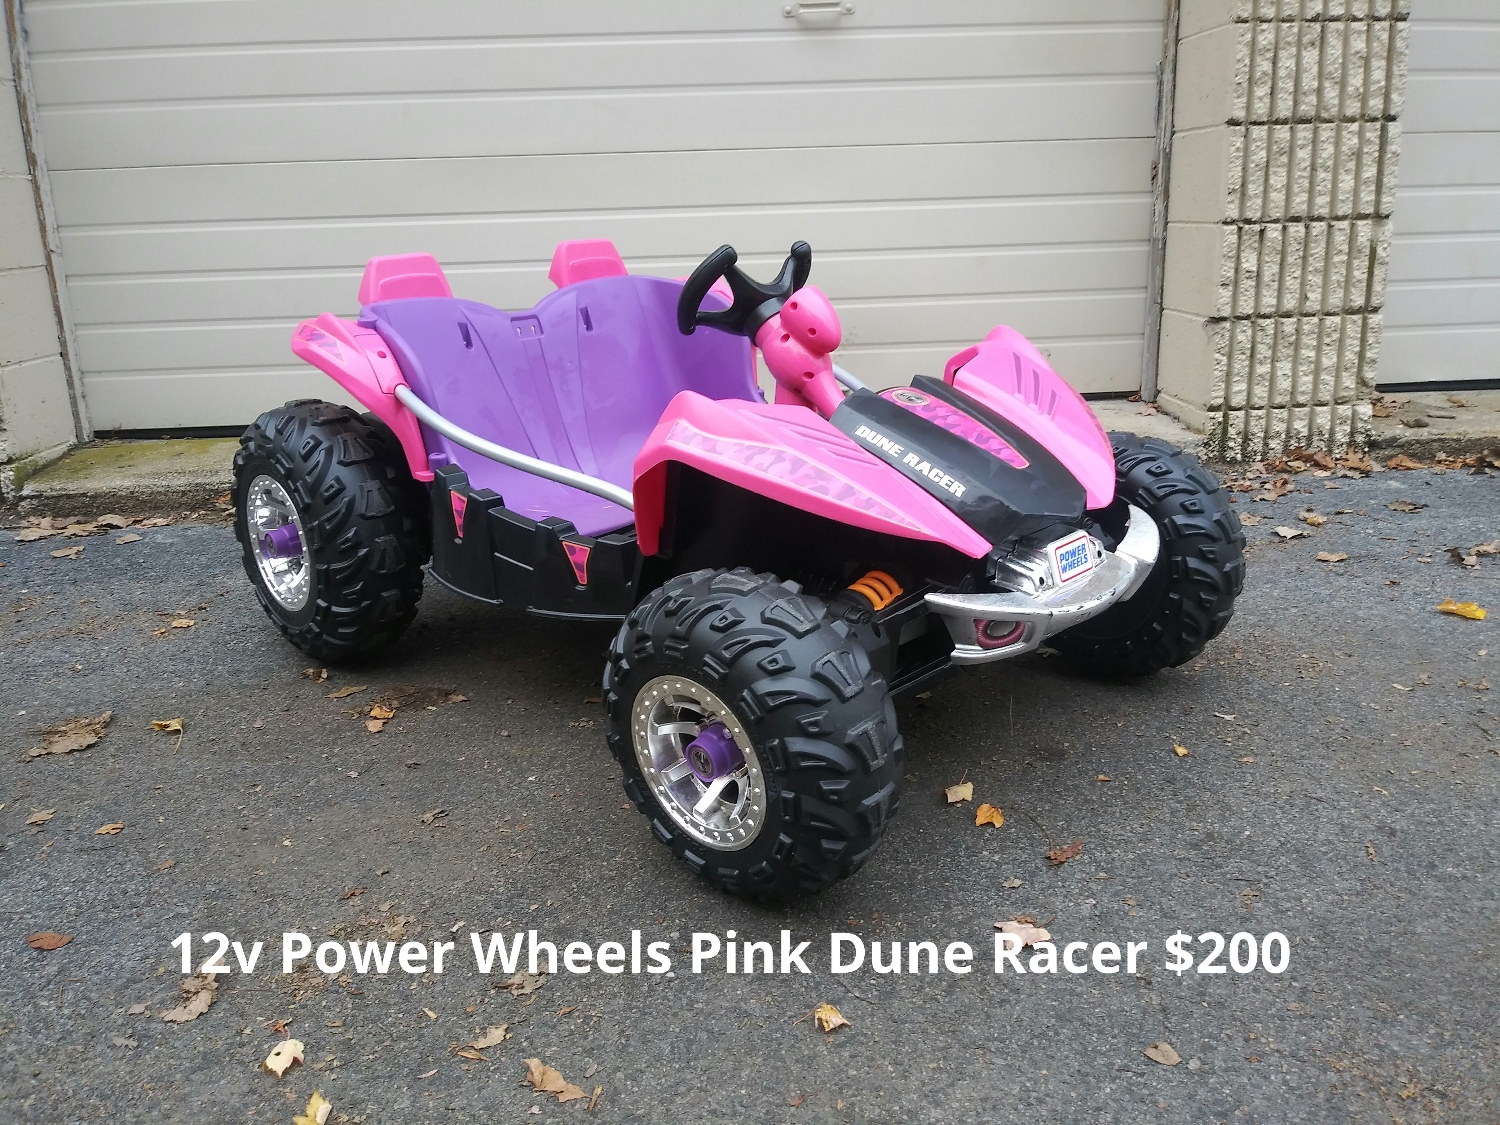 12v Power Wheels Pink Dune Racer